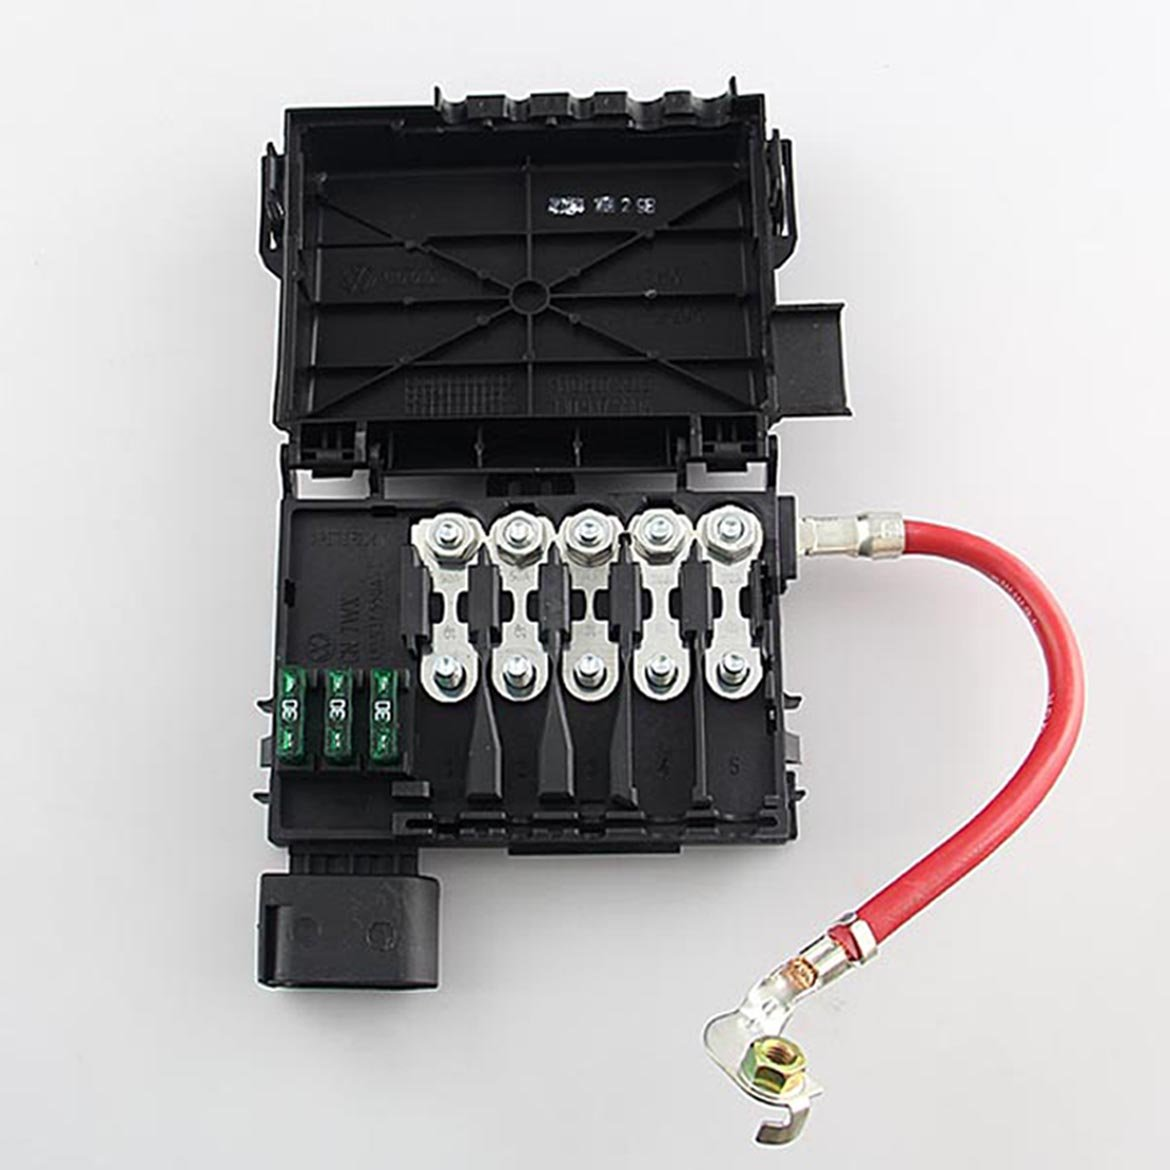 Fuse Box Battery Terminal Fit For Vw Jetta Golf Mk4 98 Audi A4 Beetle 20 19tdi 1j0937617d Car Electronics